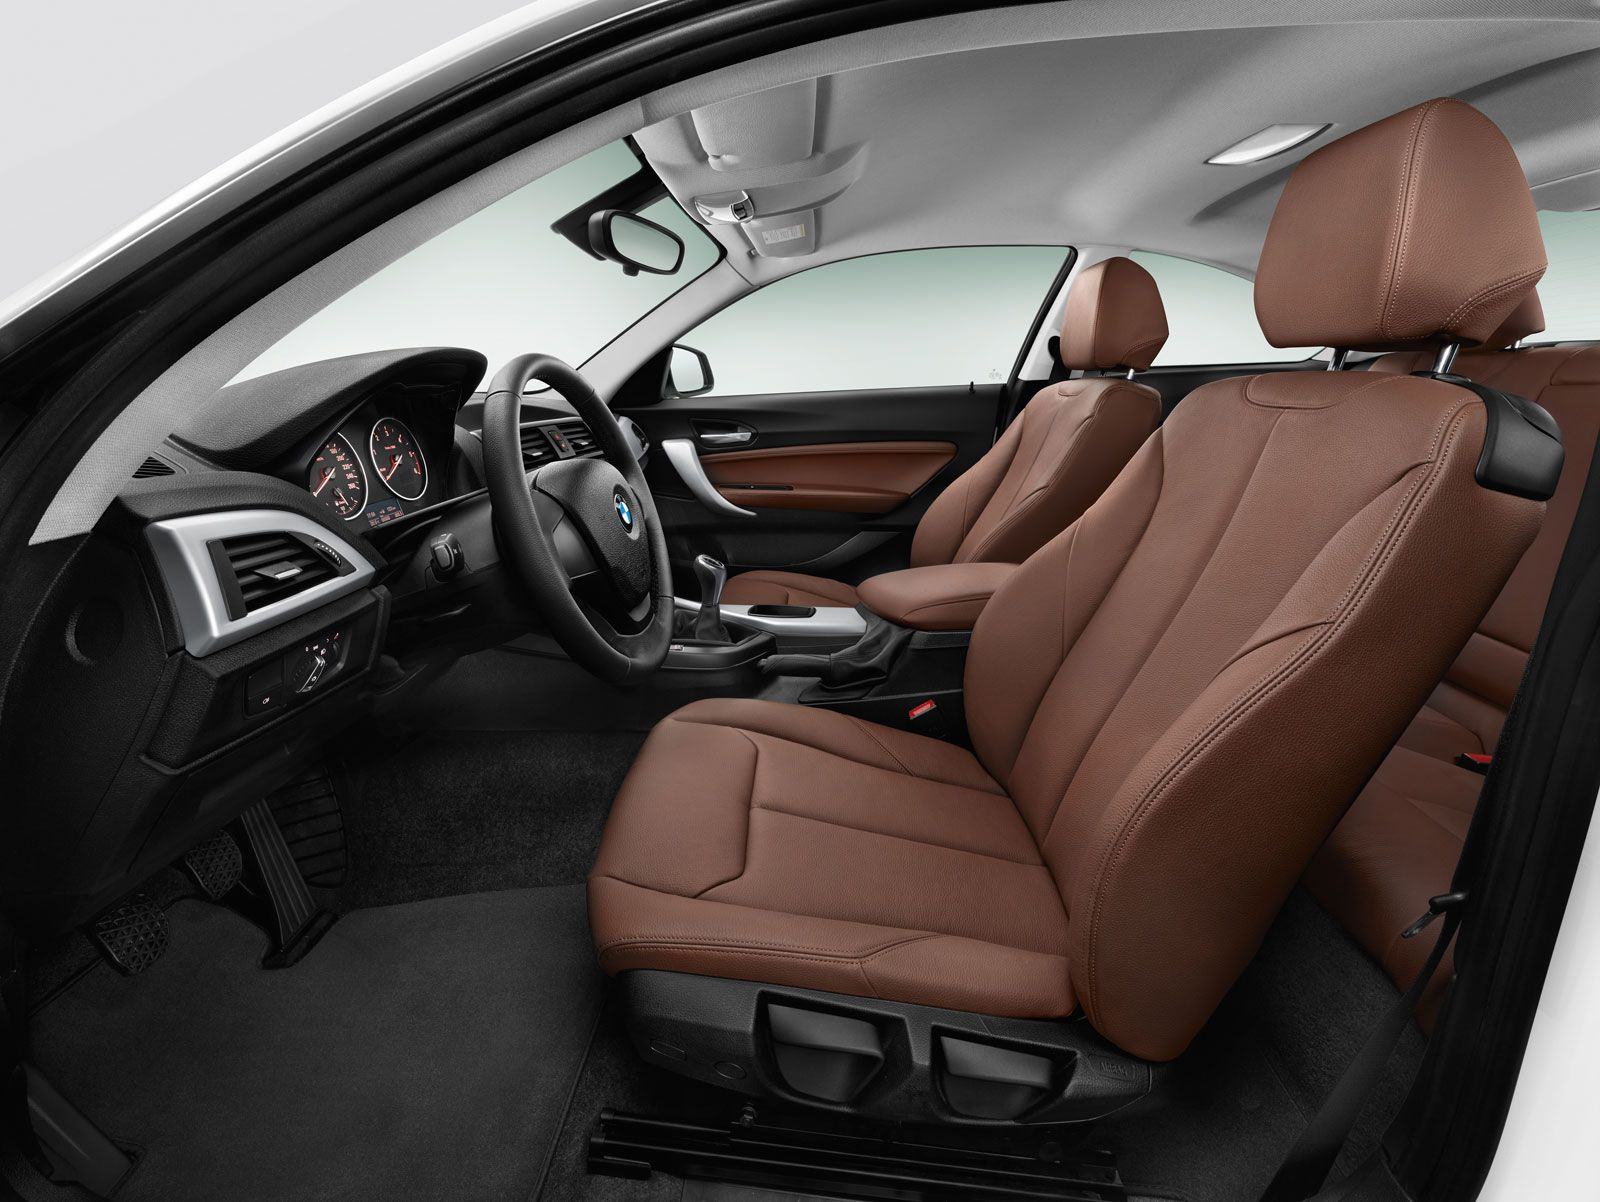 bmw 2 series coupe transport auto interior brown leather cars campers pinterest bmw. Black Bedroom Furniture Sets. Home Design Ideas